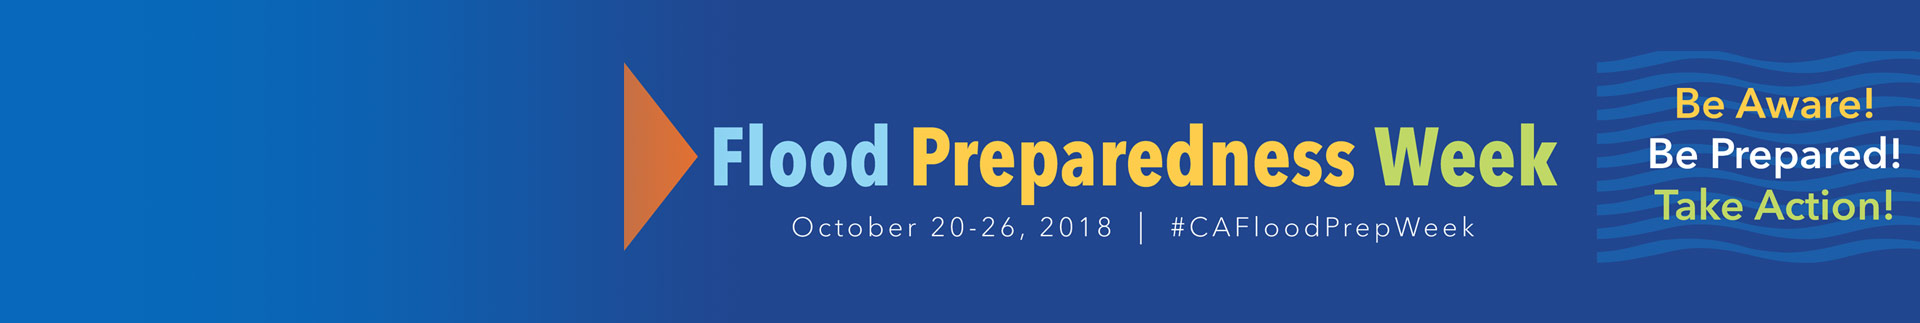 Flood Prep week Oct 20-26